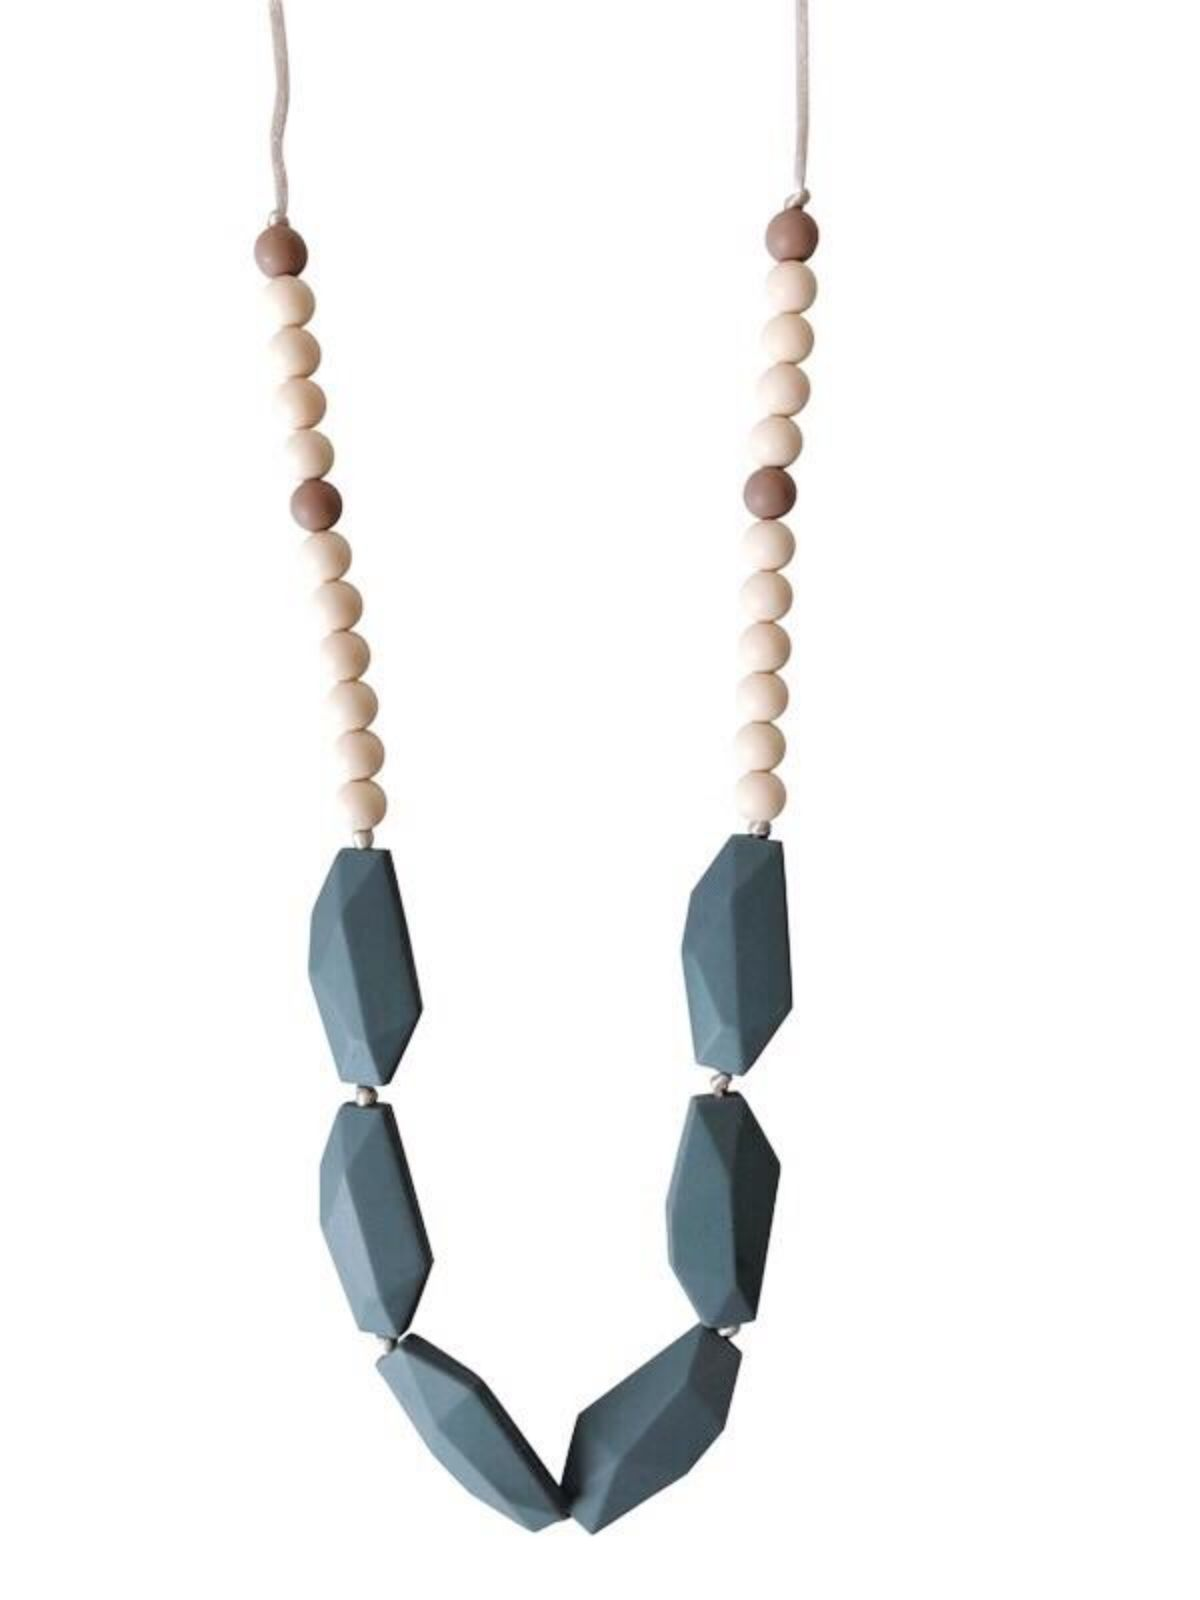 The Emerson Teething Necklace